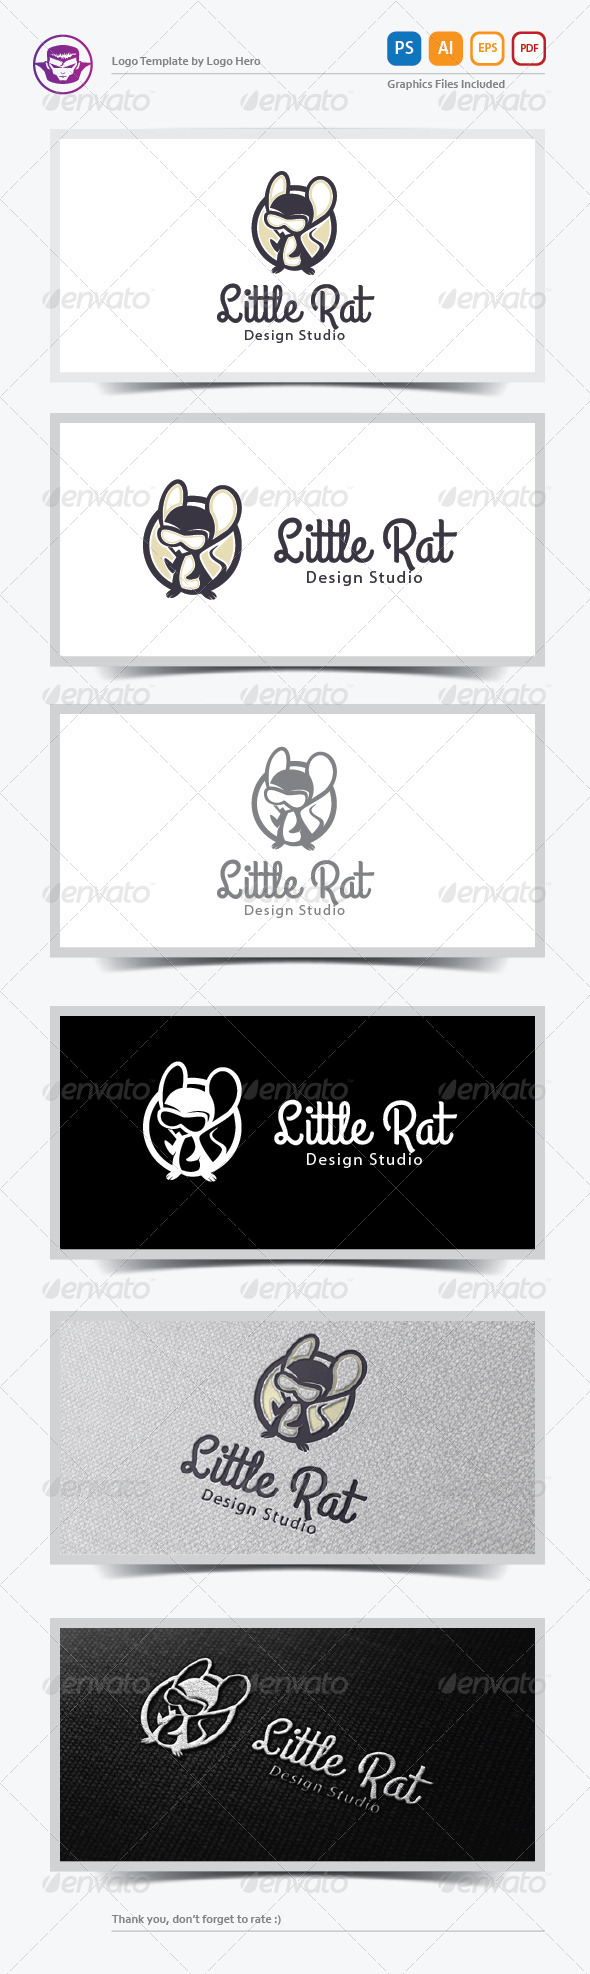 GraphicRiver Little Rat Logo Template 6384212